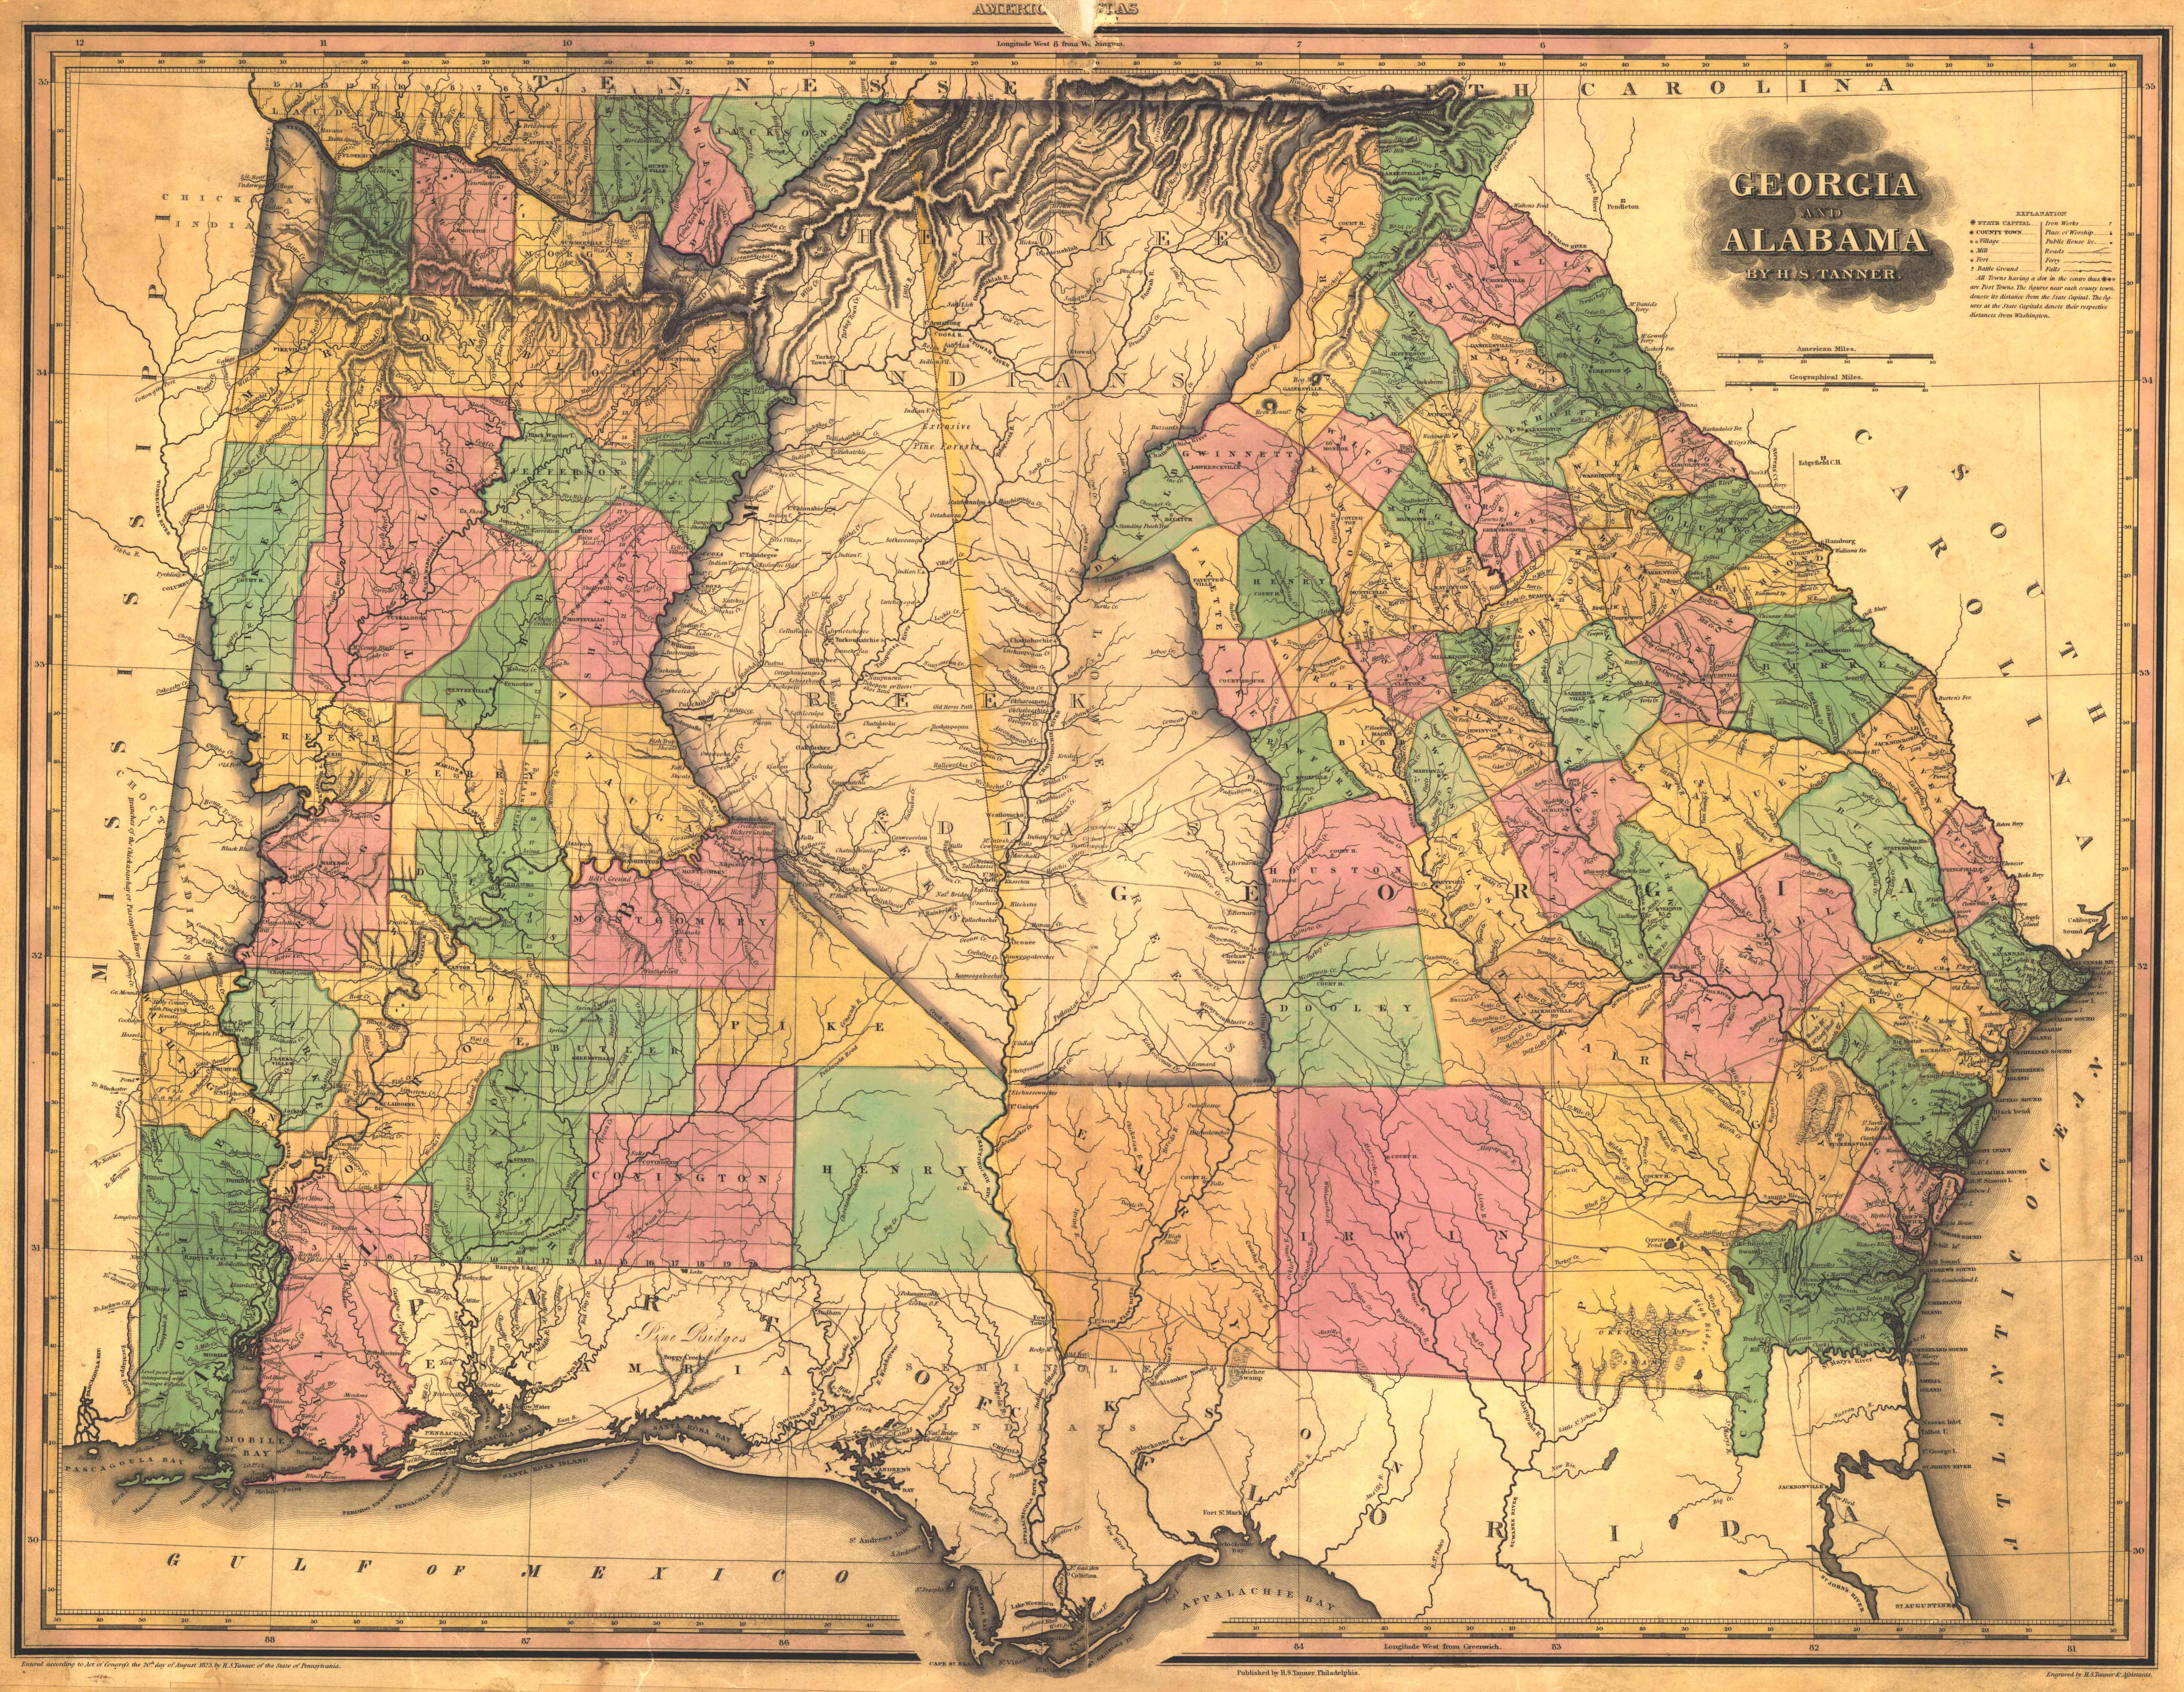 File 1823 Map of Alabama and Georgia counties Wikimedia mons